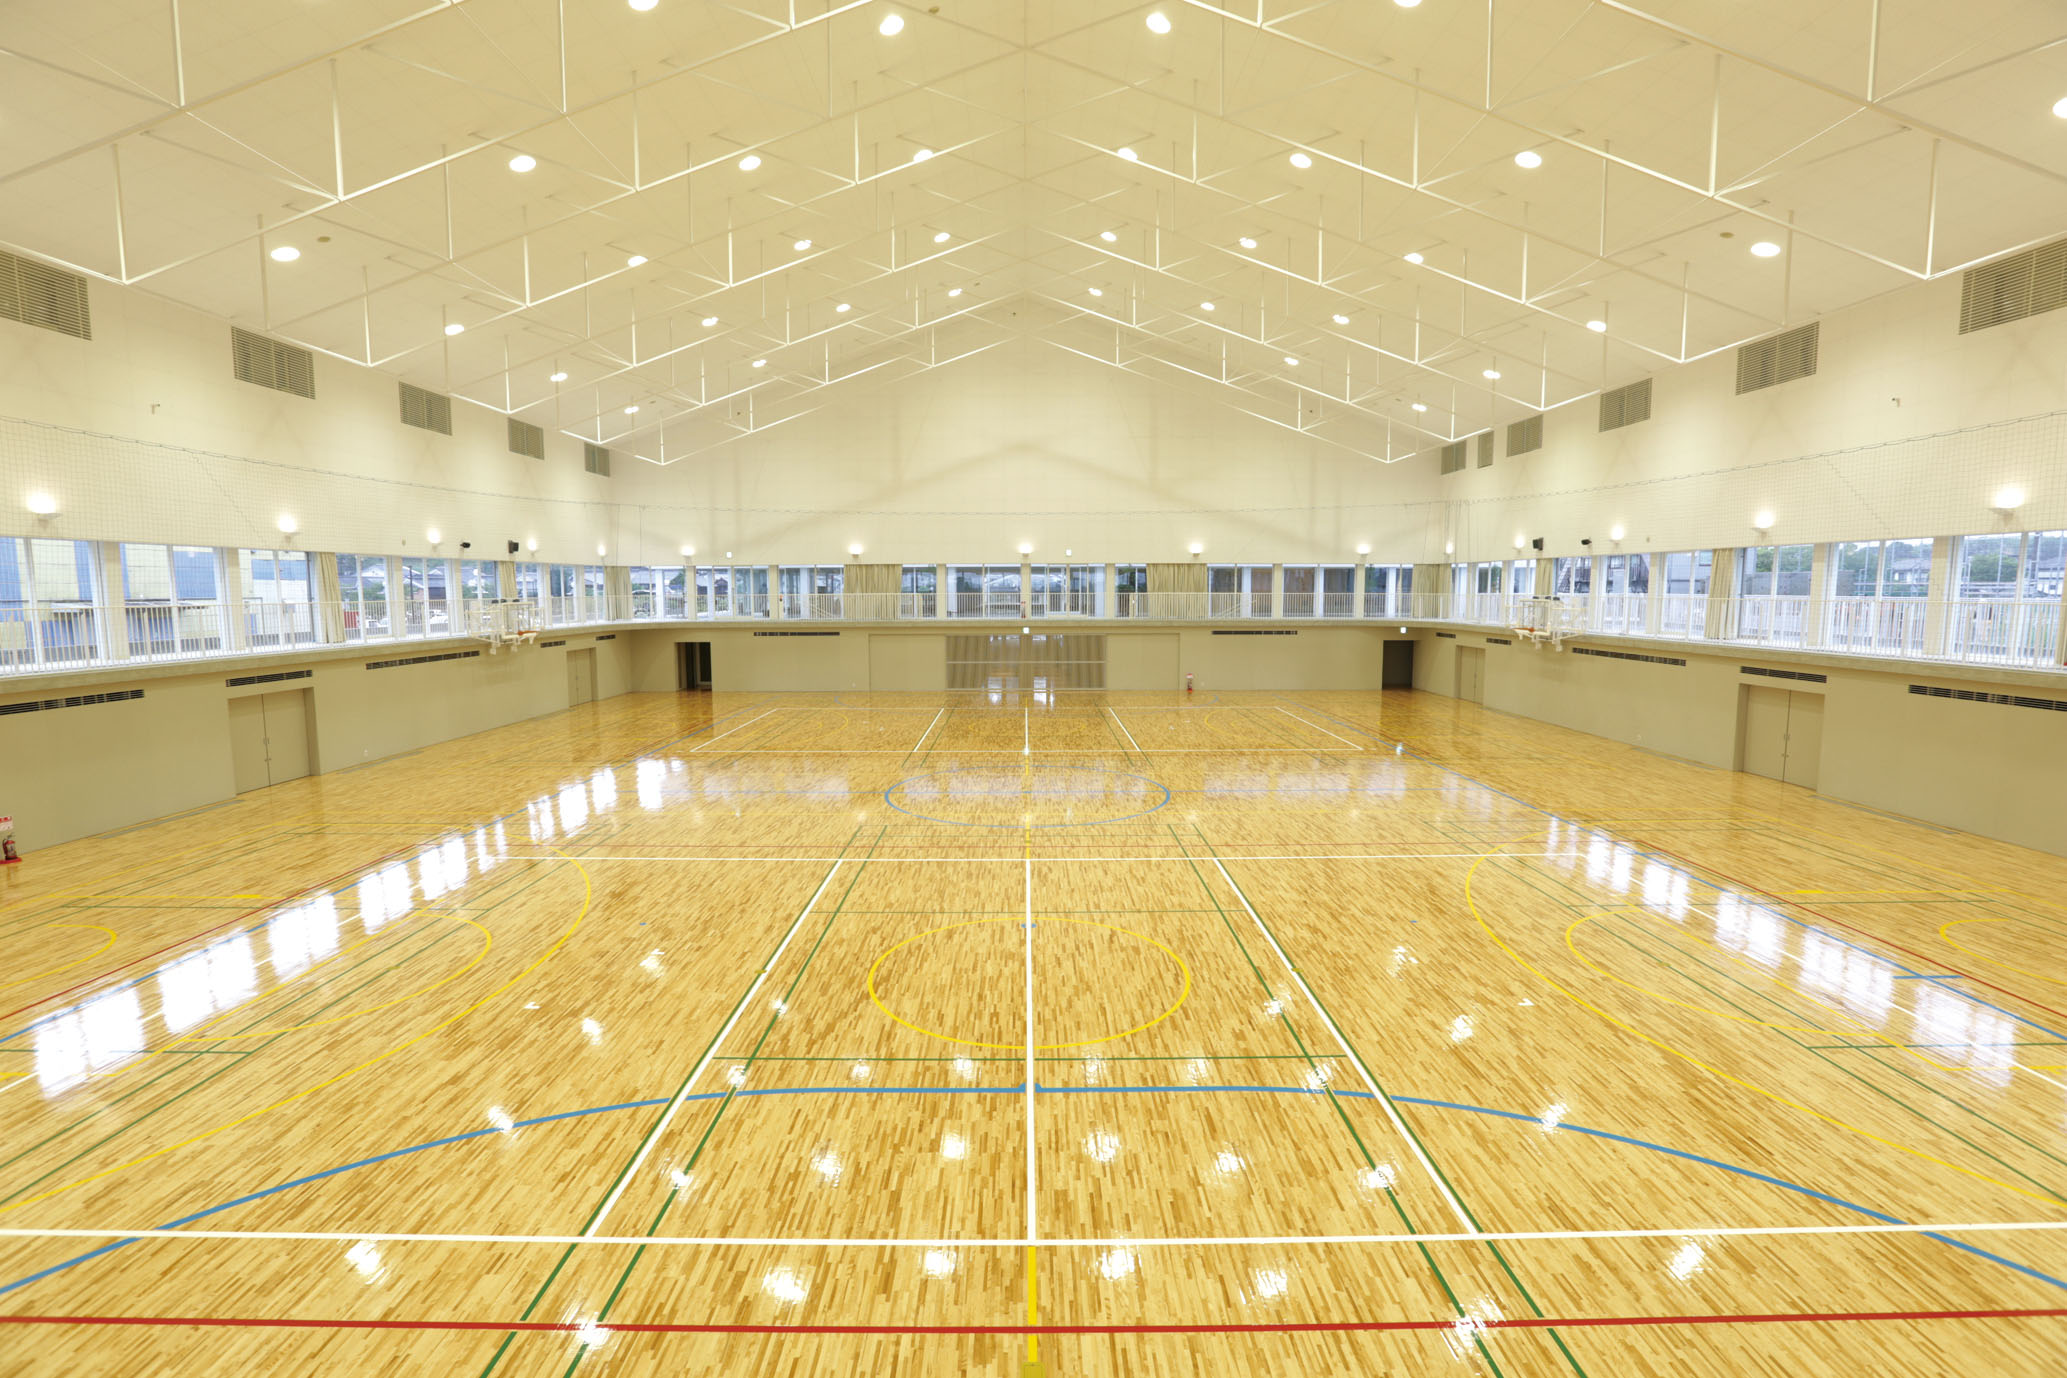 Ureshino city social cultural center liberty saga Indoor basketball court ceiling height